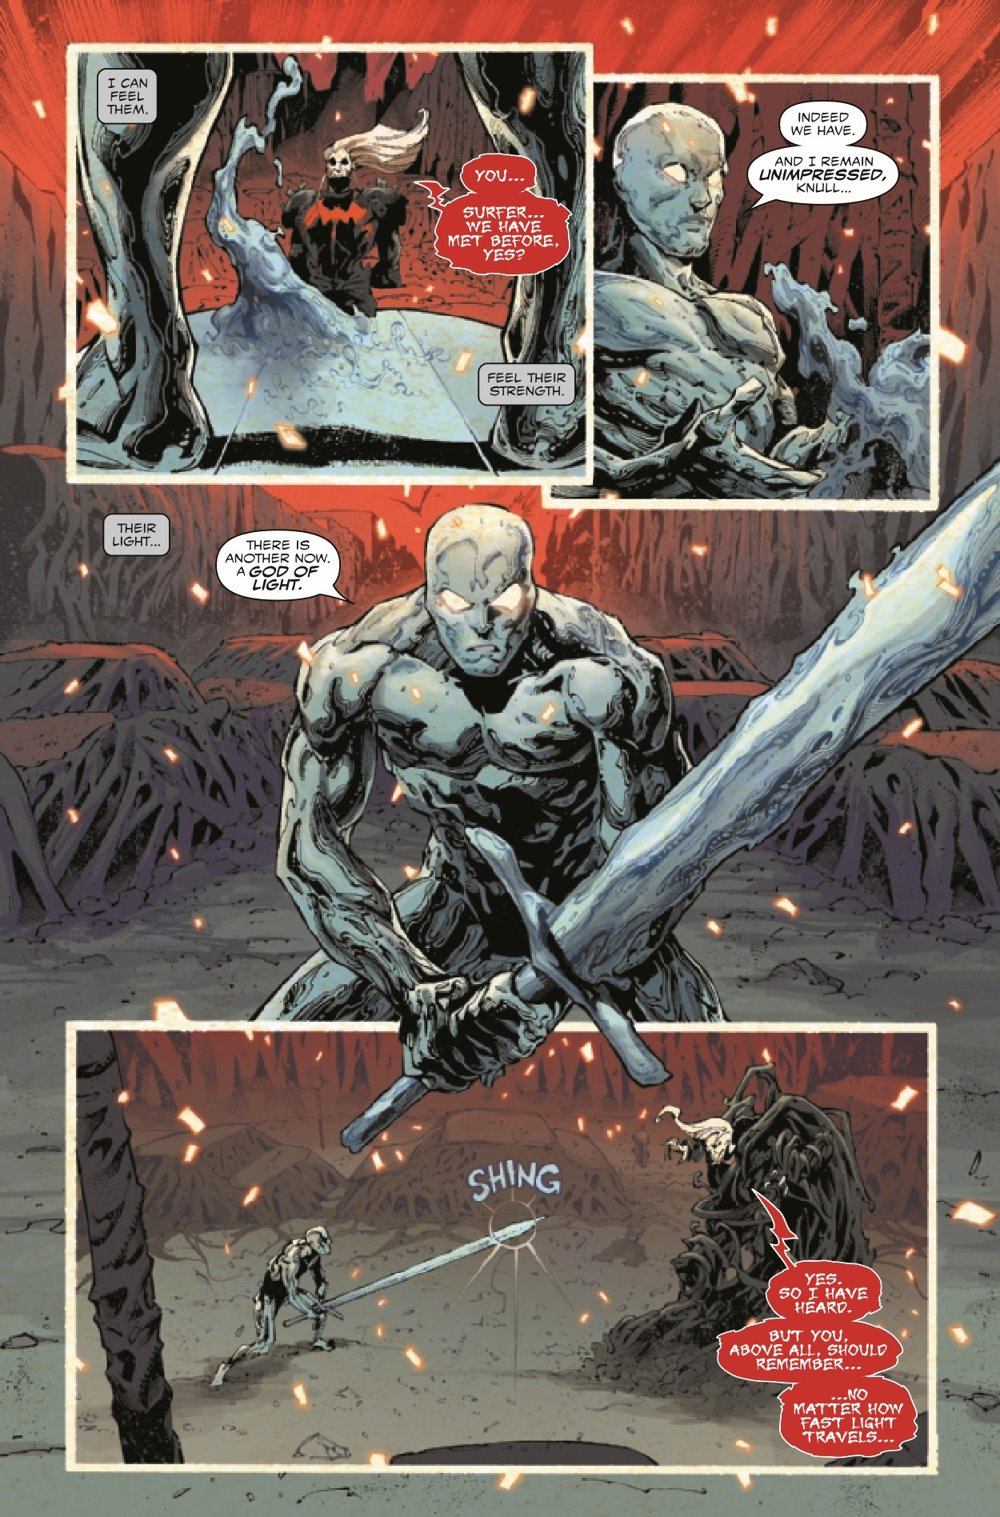 KINGINBLACK2020005_Preview-3 ComicList Previews: KING IN BLACK #5 (OF 5)